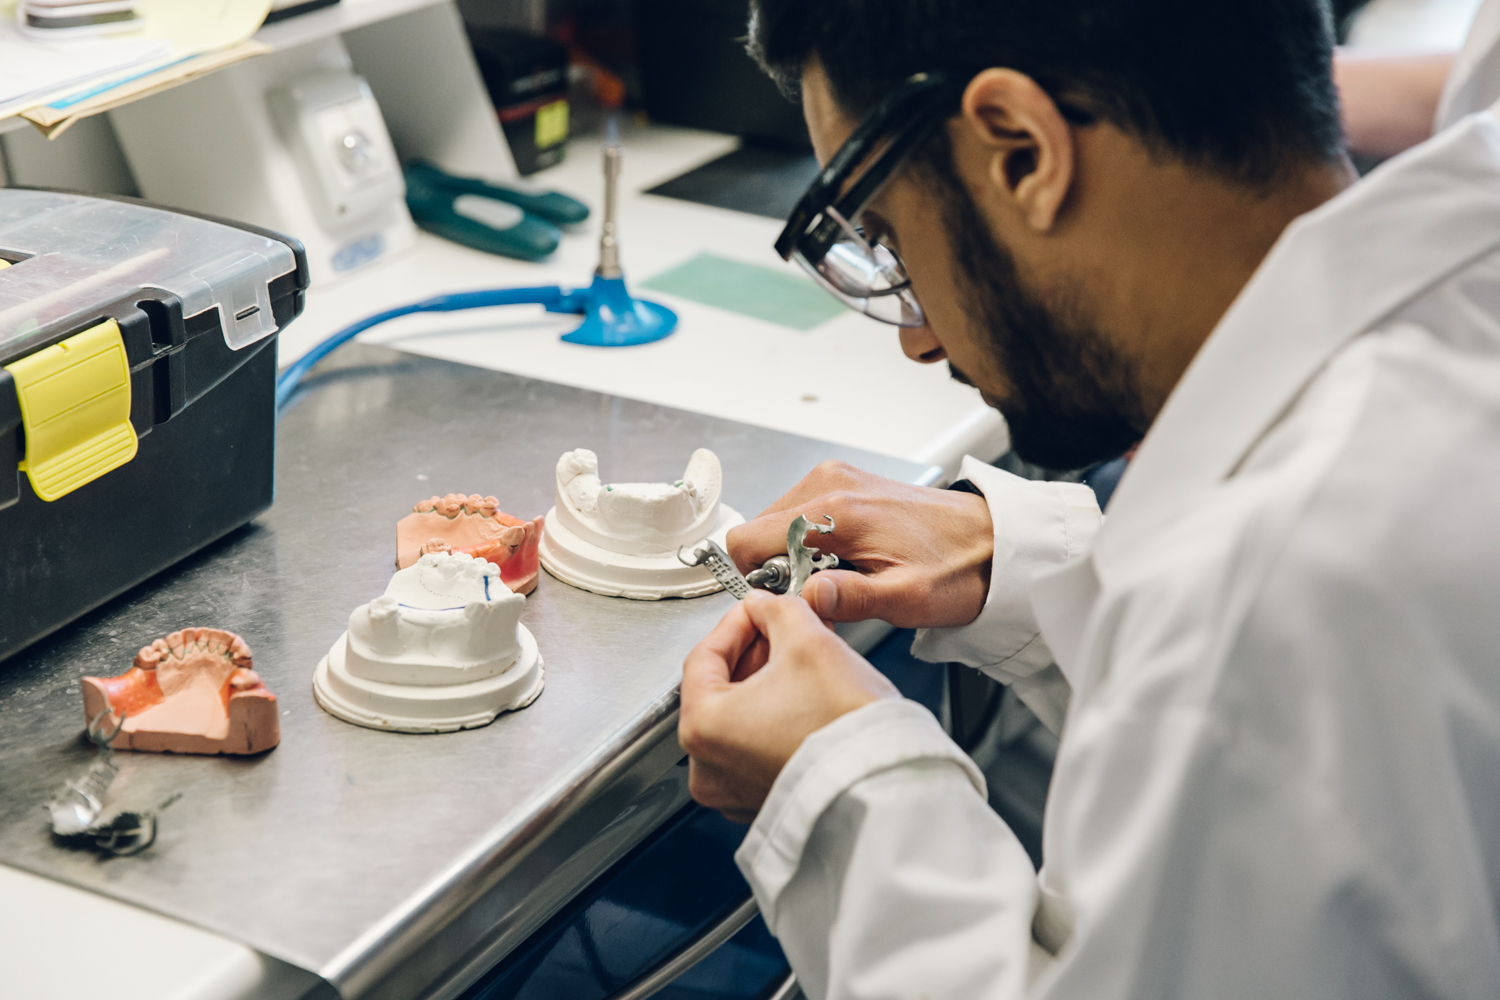 What Do Dental Technicians Do On A Daily Basis?